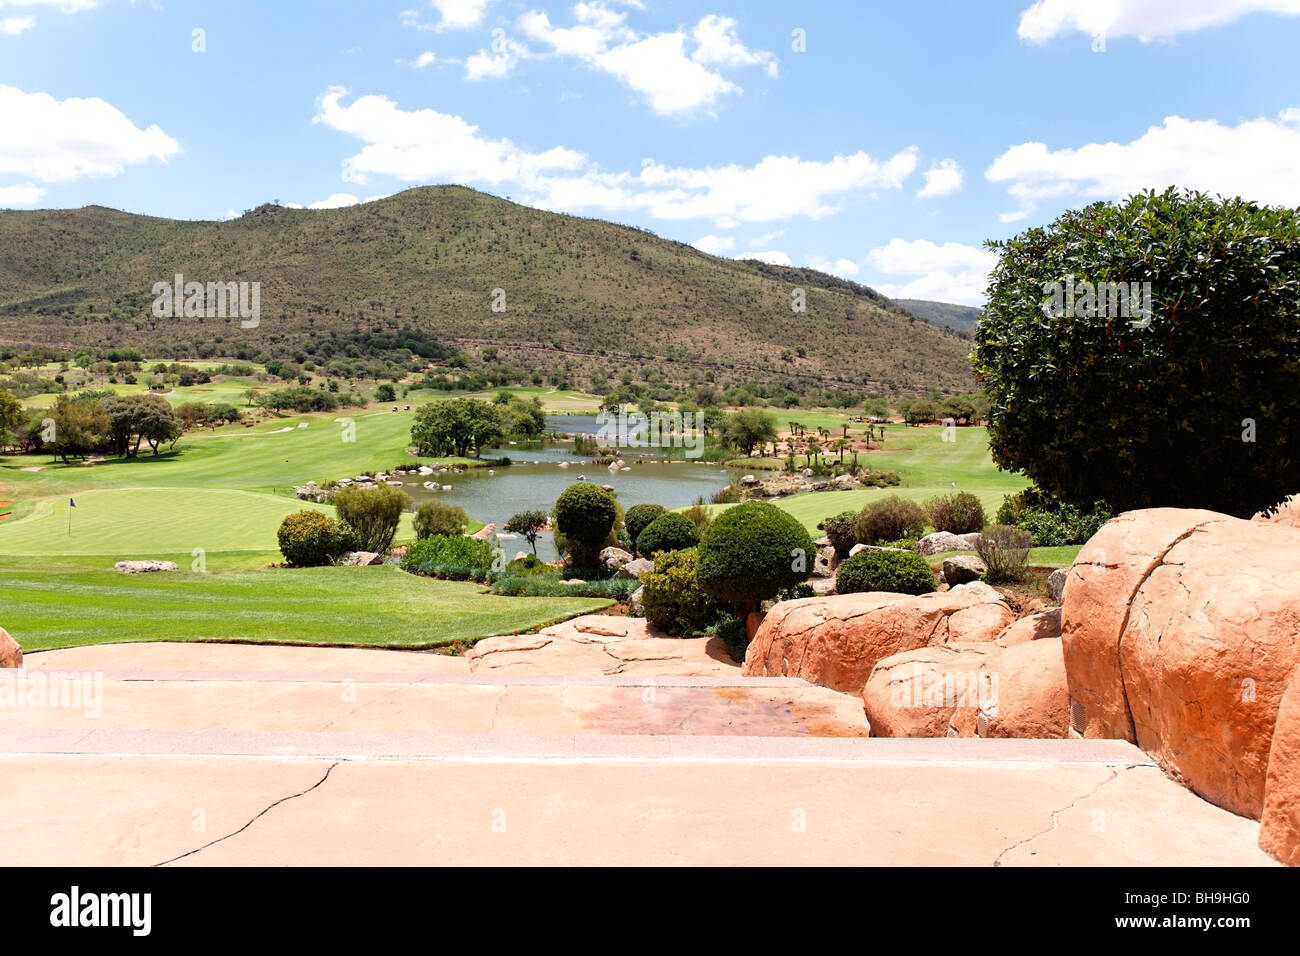 Sun City Golf Course Northwest Province , Johannesburg,South Africa - Stock Image